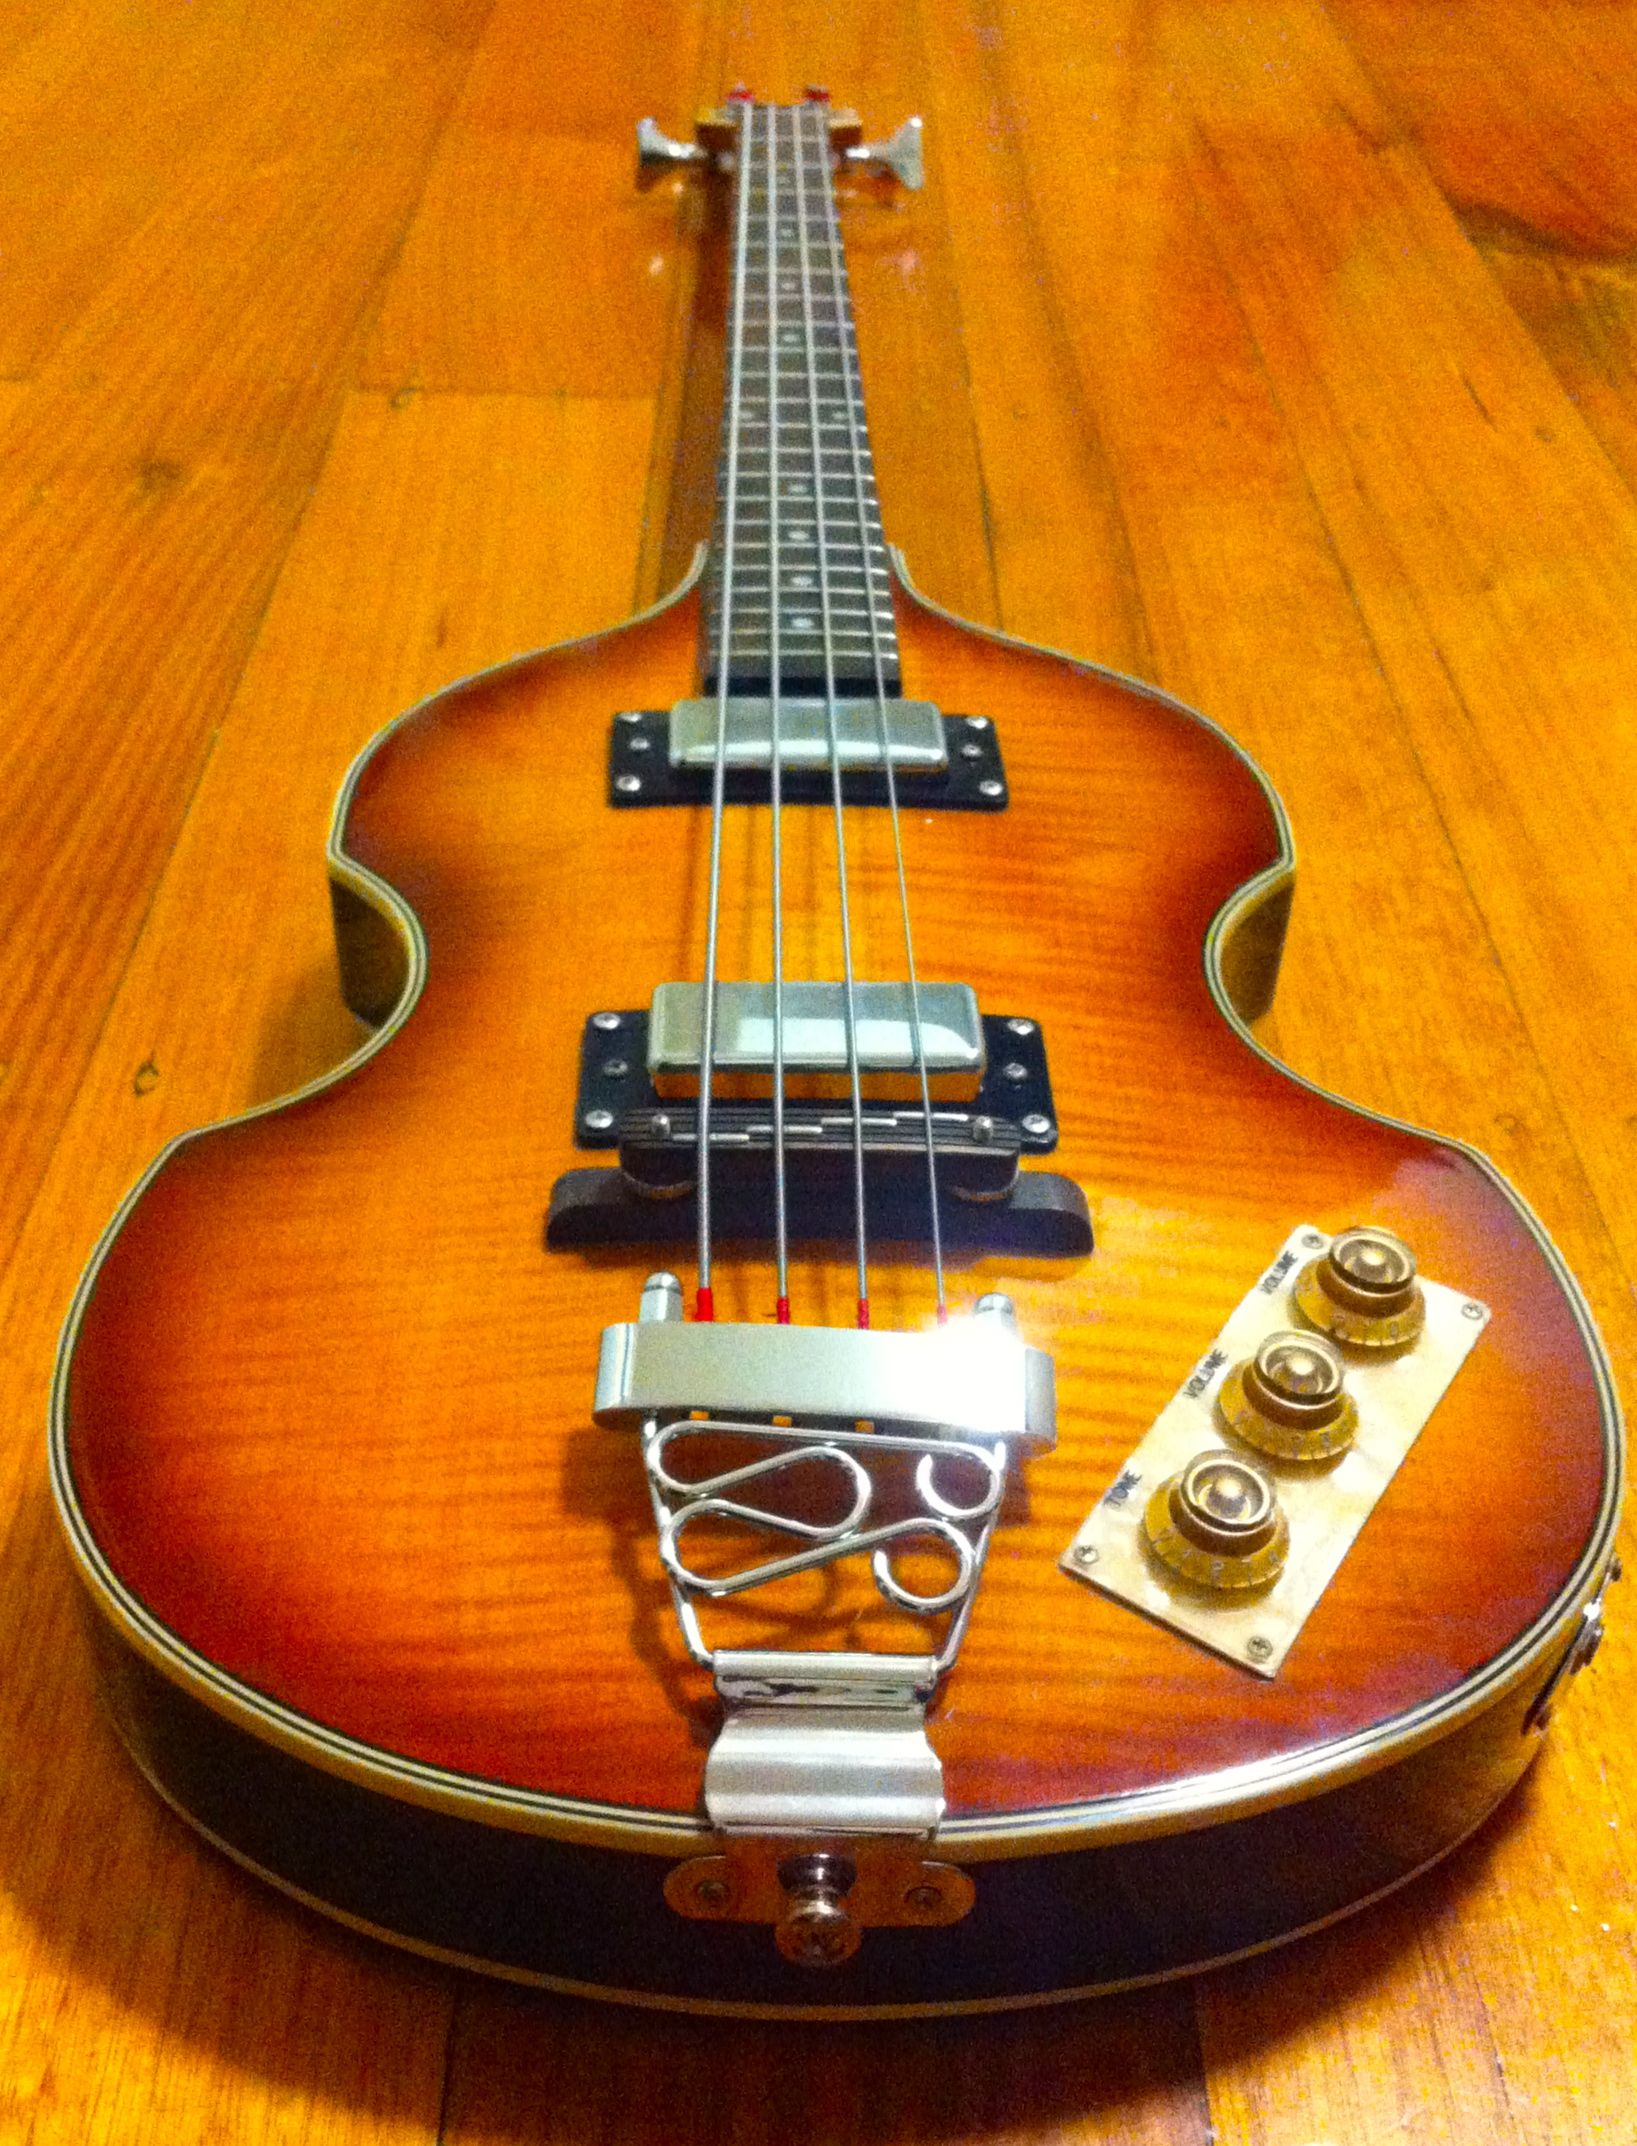 epiphone viola bass own one great bass better sound with the round wound strings guitars. Black Bedroom Furniture Sets. Home Design Ideas